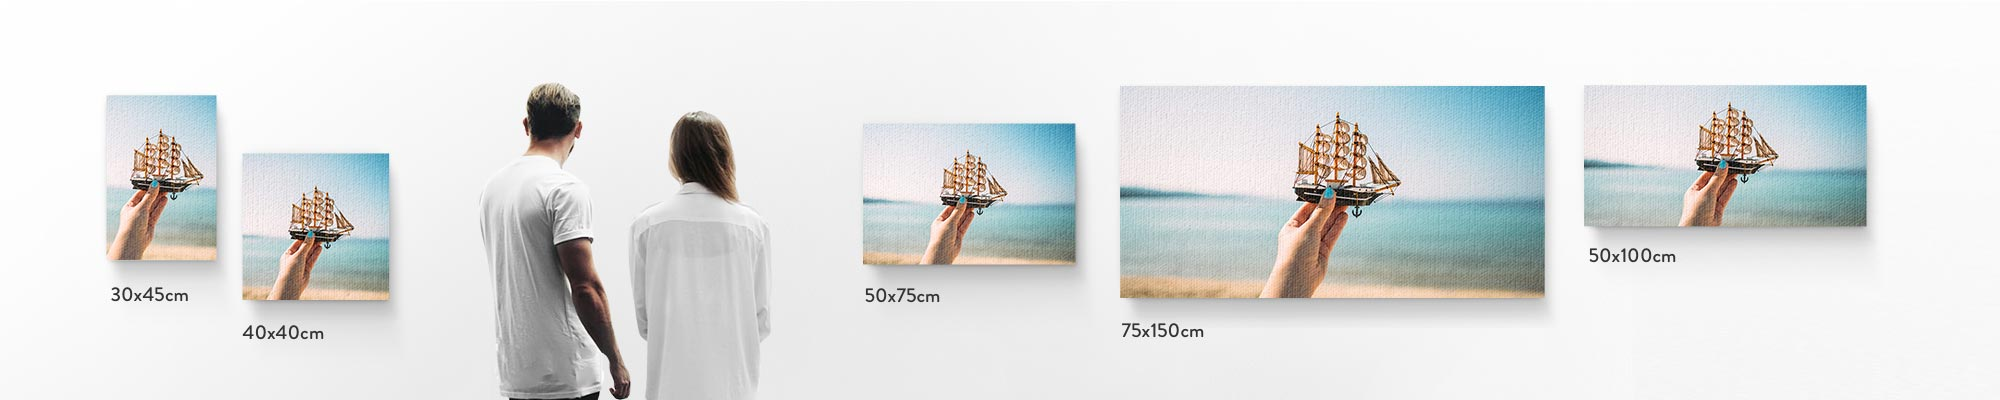 Canvas print sizes - How do we stack up? We offer a range of canvas sizes to suit your needs, space and decor.  Our canvas prints are available in sizes ranging from 30x30cm-30x60cm  and larger sizes between 50x75cm-75x150cm.